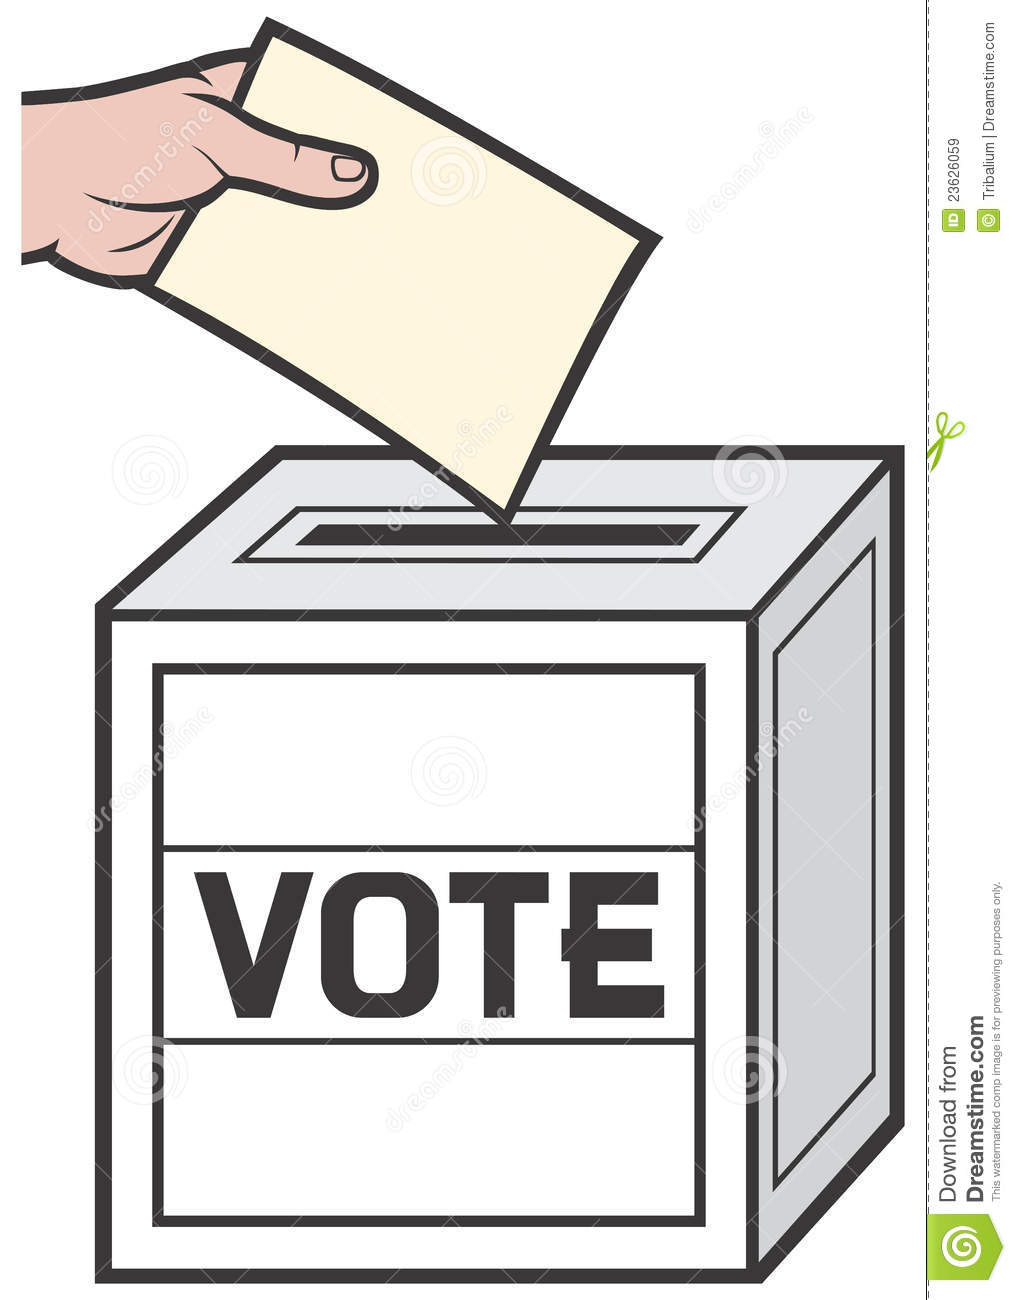 Ballot box clipart cover photo clip transparent download ballot clipart | Clipart Panda - Free Clipart Images clip transparent download